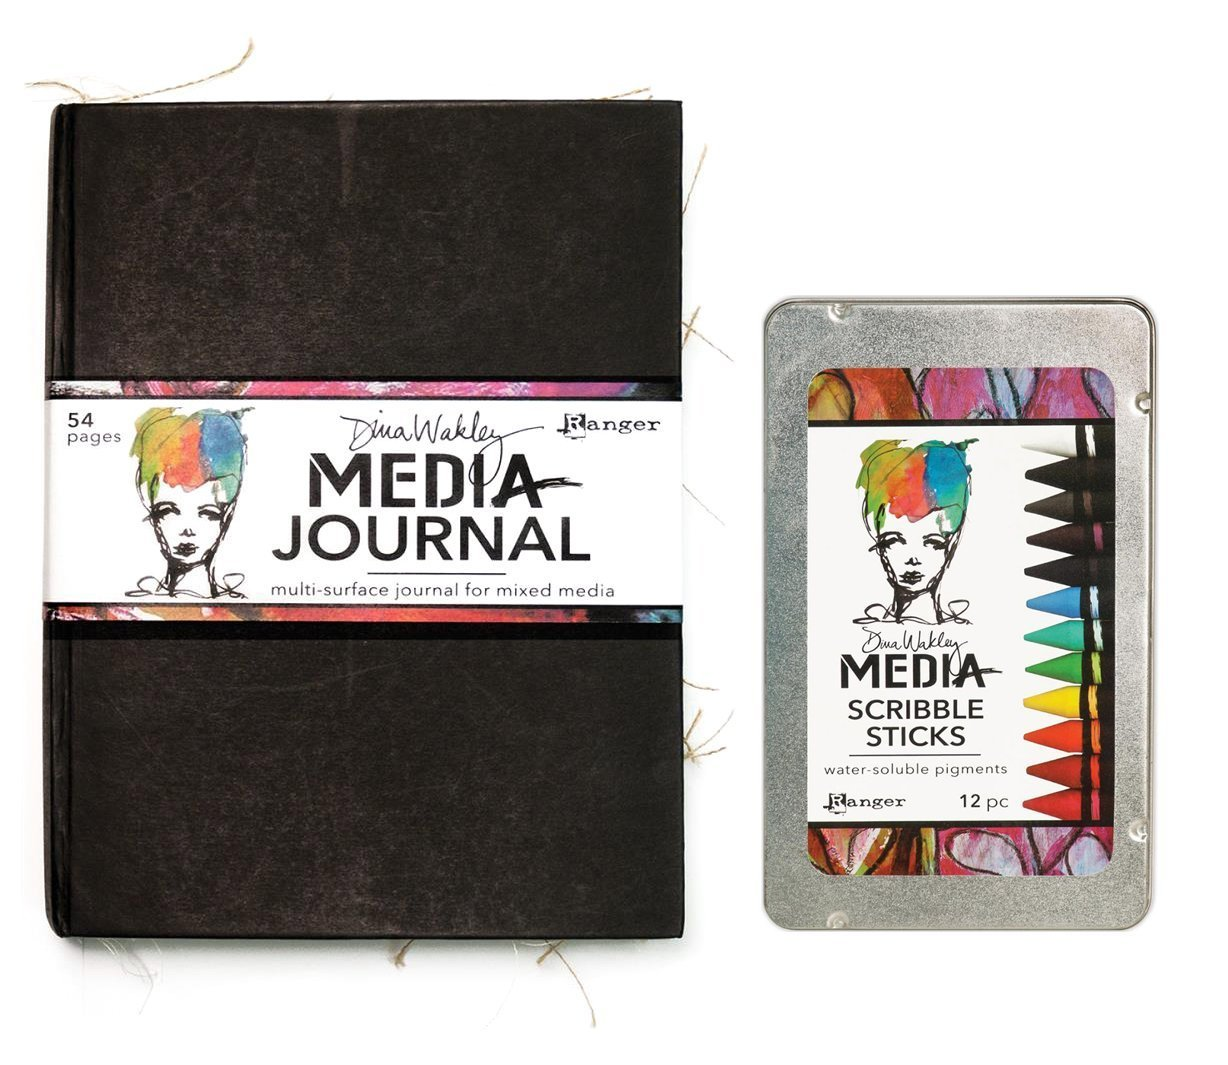 Dina Wakley Media Journal and Scribble Sticks Bundle - Mixed Media Journal & 12 Water-Soluble Crayons by Dina Wakley Media (Image #1)